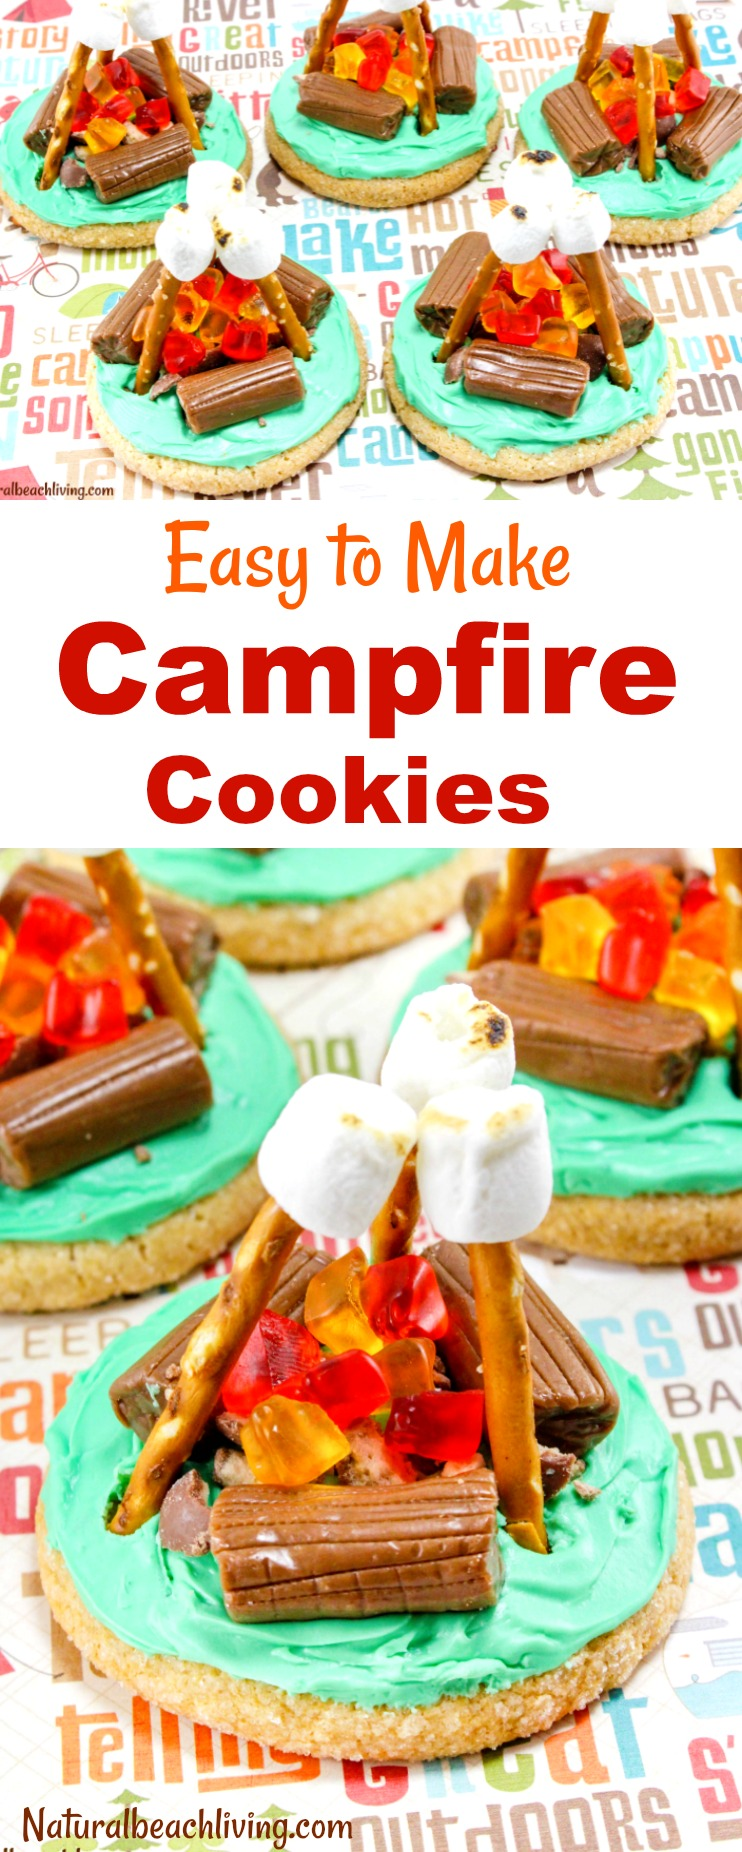 How To Make Campfire Cookies Everyone Will Love Camping Theme Party Ideas